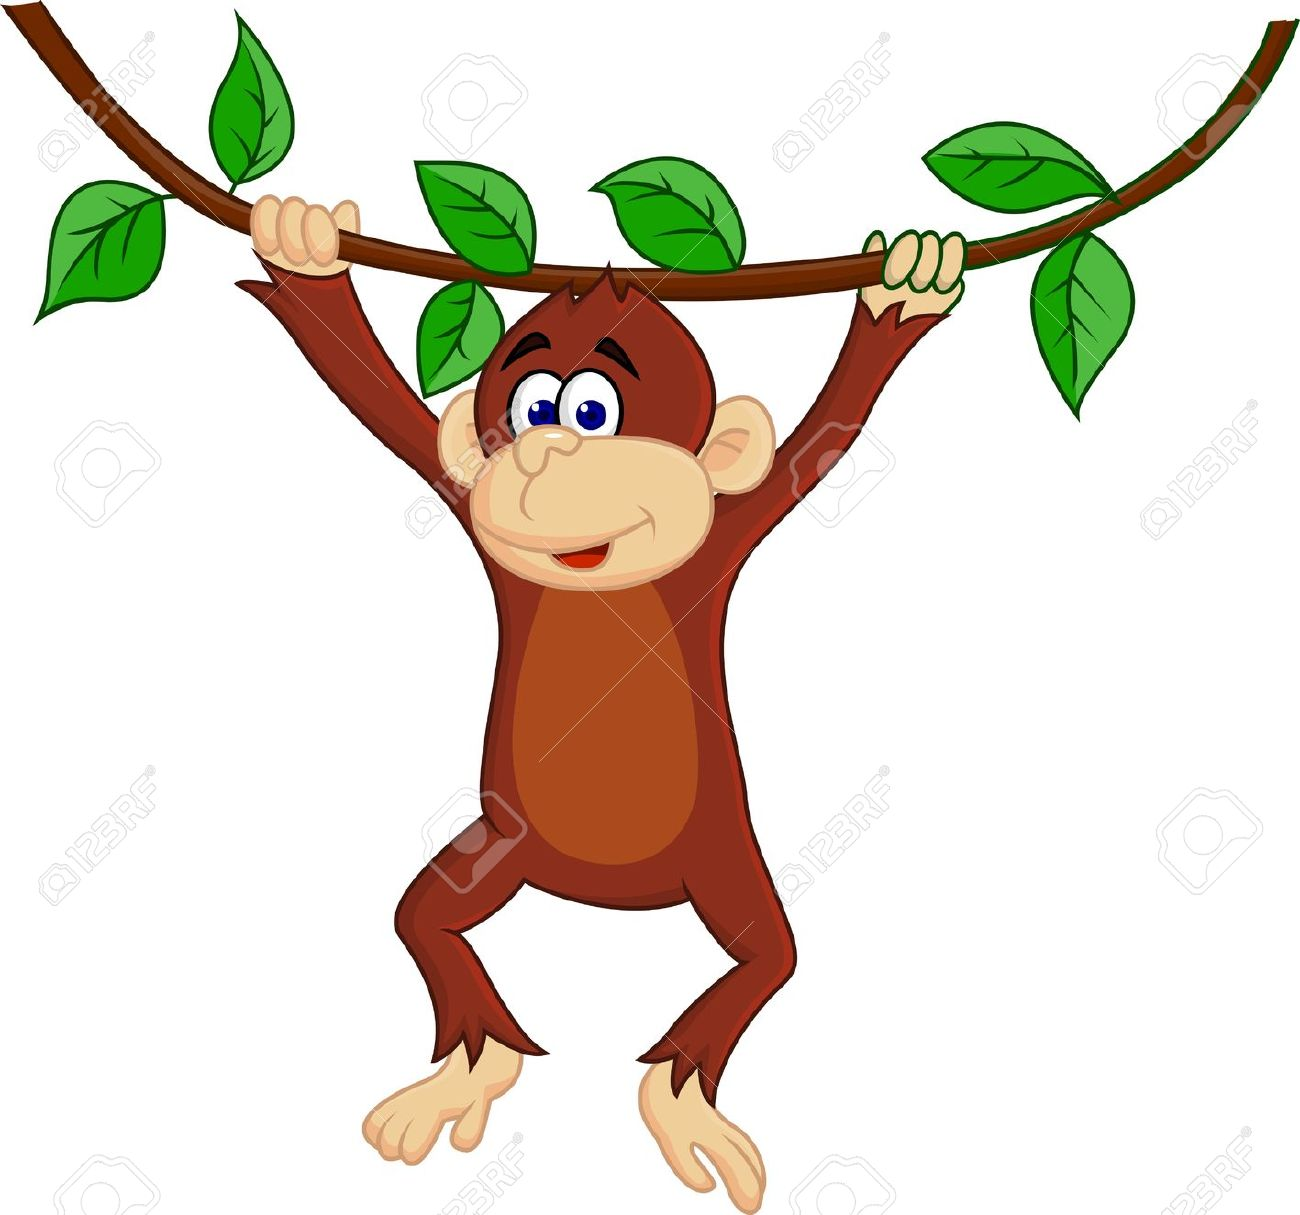 hight resolution of 1300x1215 monkey banana clip art image